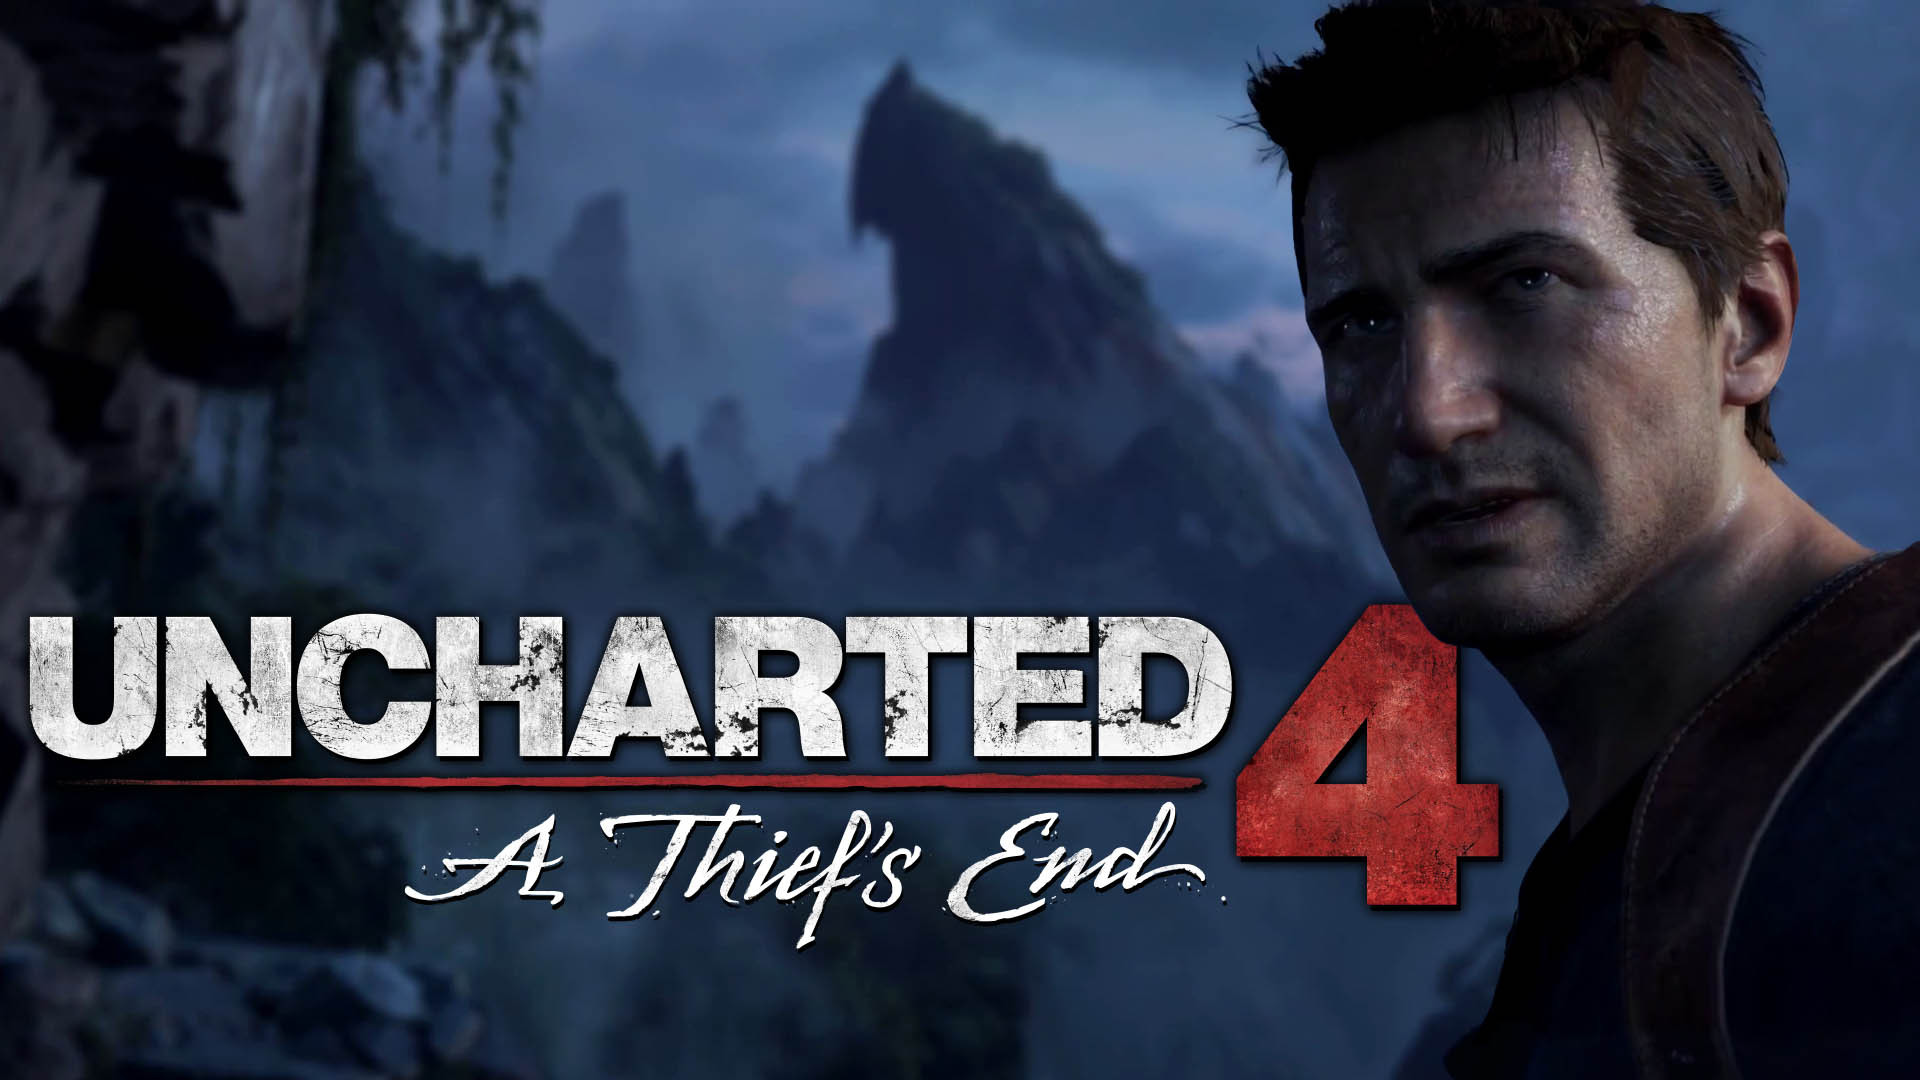 Uncharted 4 A Thiefs End Wallpapers Images Photos 1920x1080